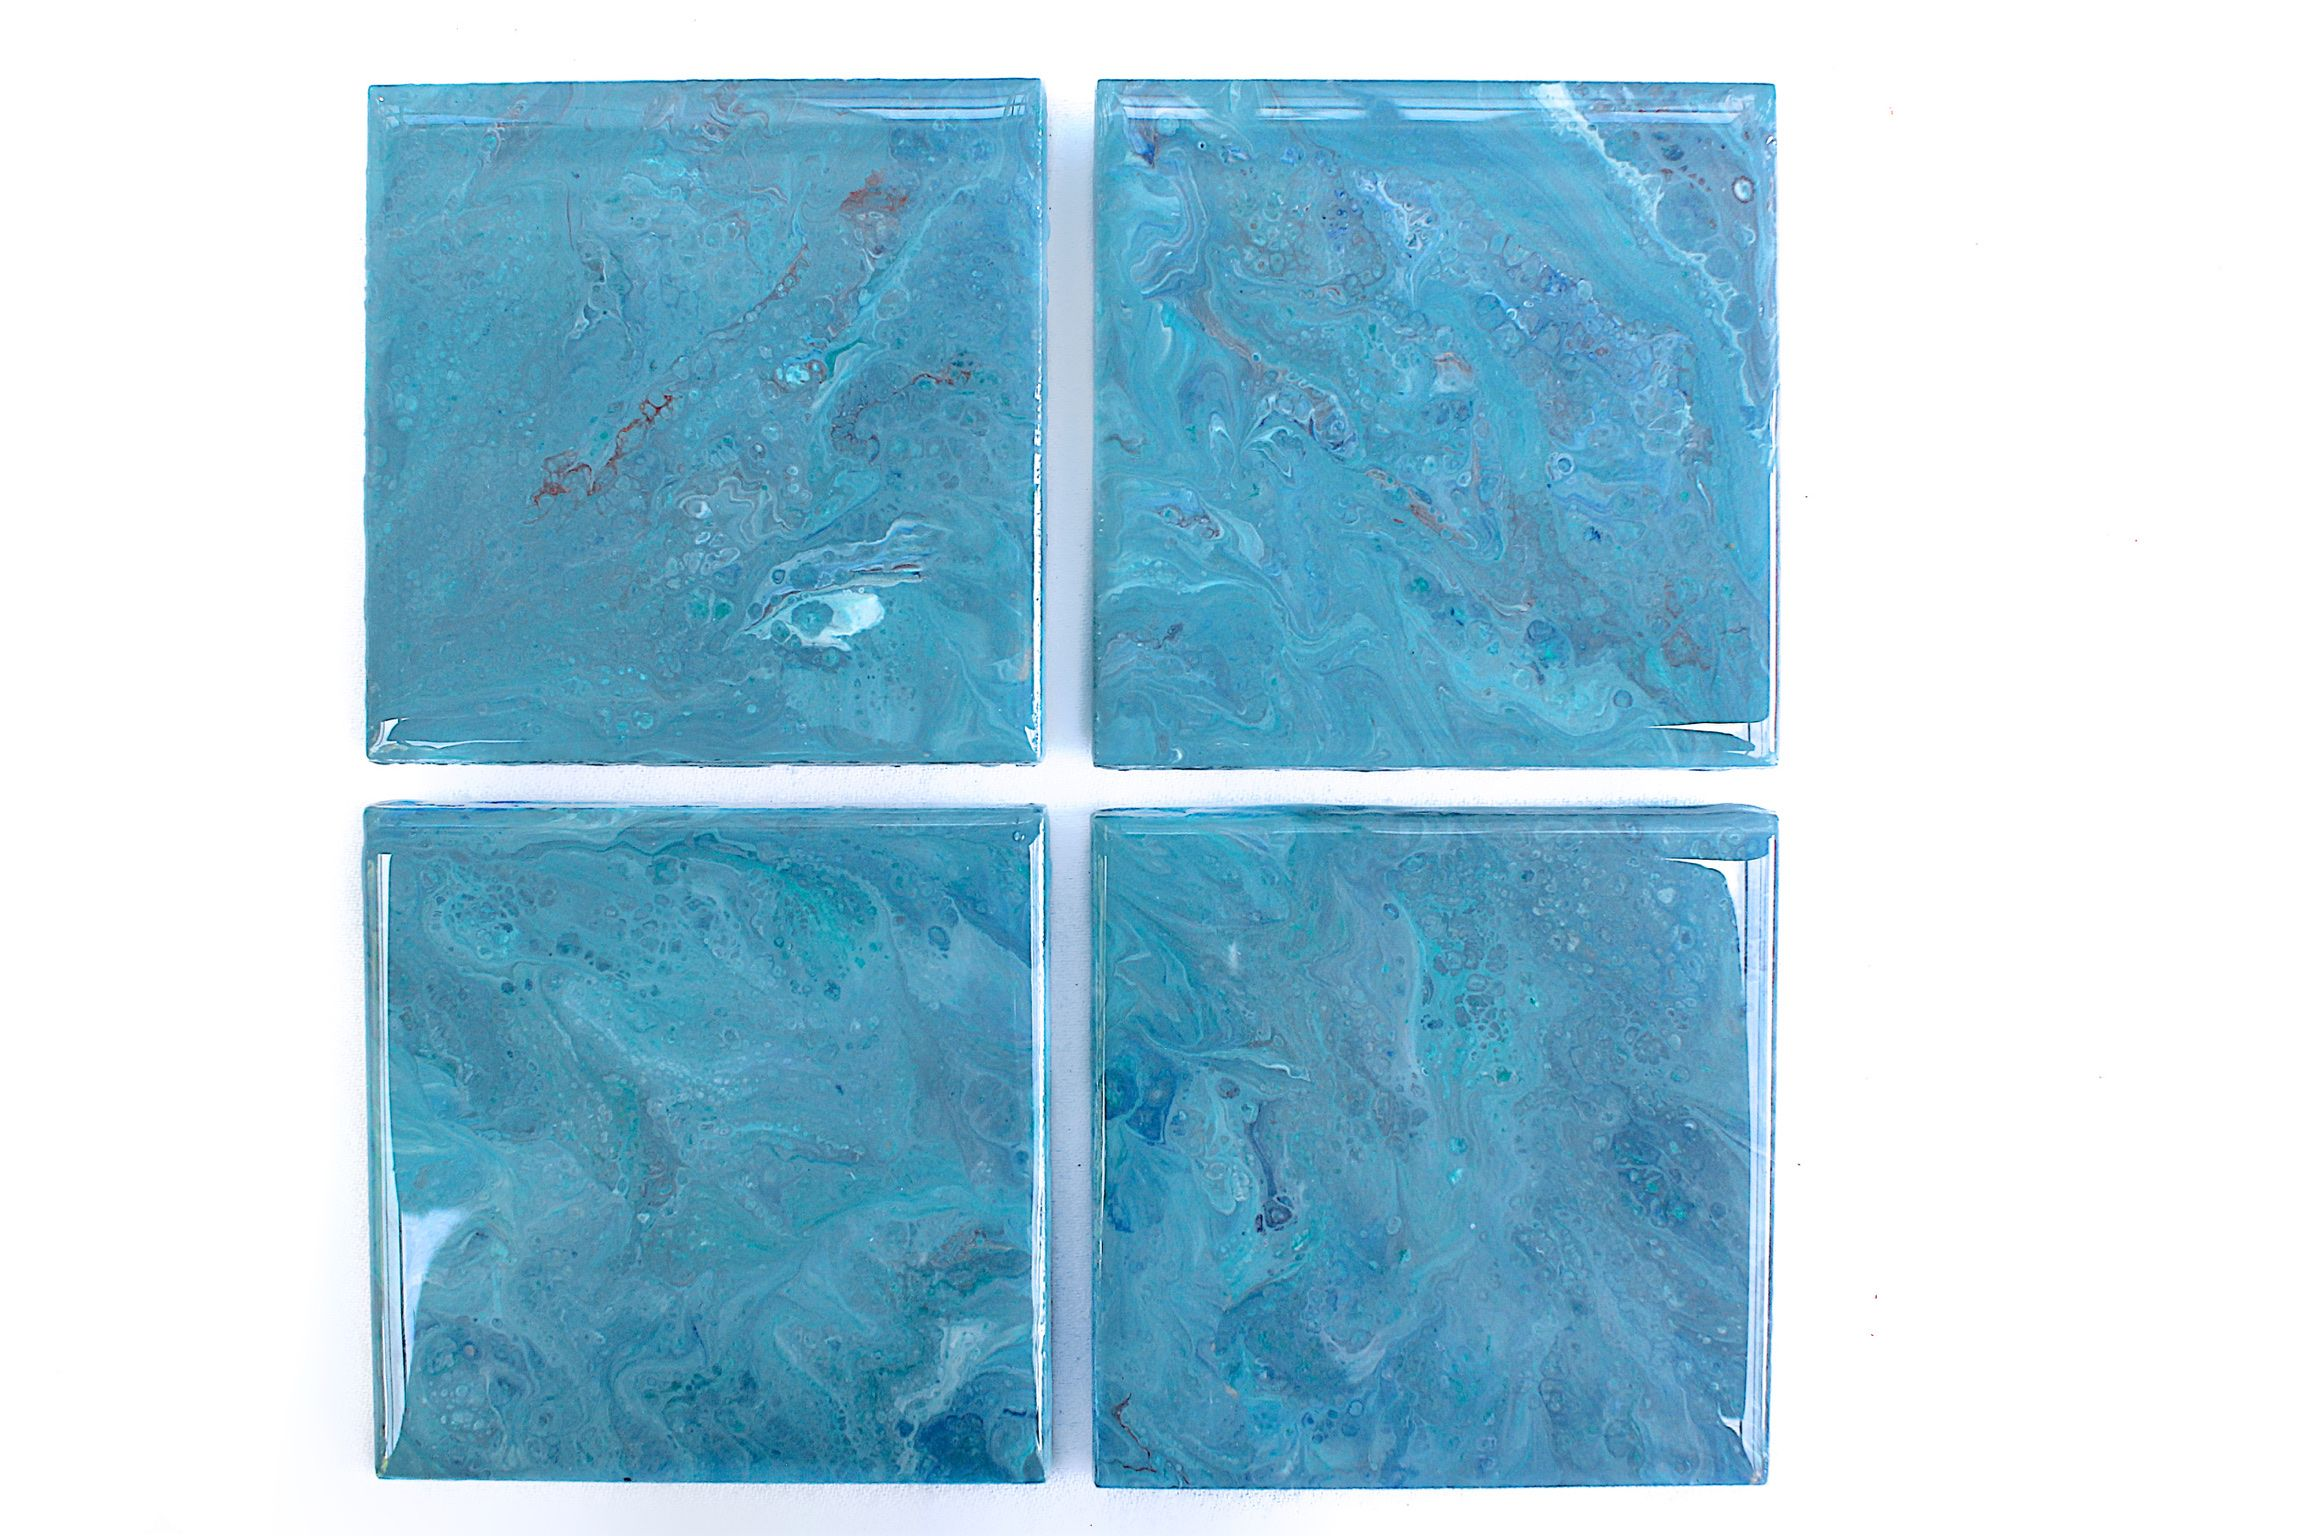 Gorgeous Blue Hand Painted Ceramic Tile Coasters With A Coat Of Glass Like Resin Painting Ceramic Tiles Ceramic Tile Coaster Hand Painted Ceramics